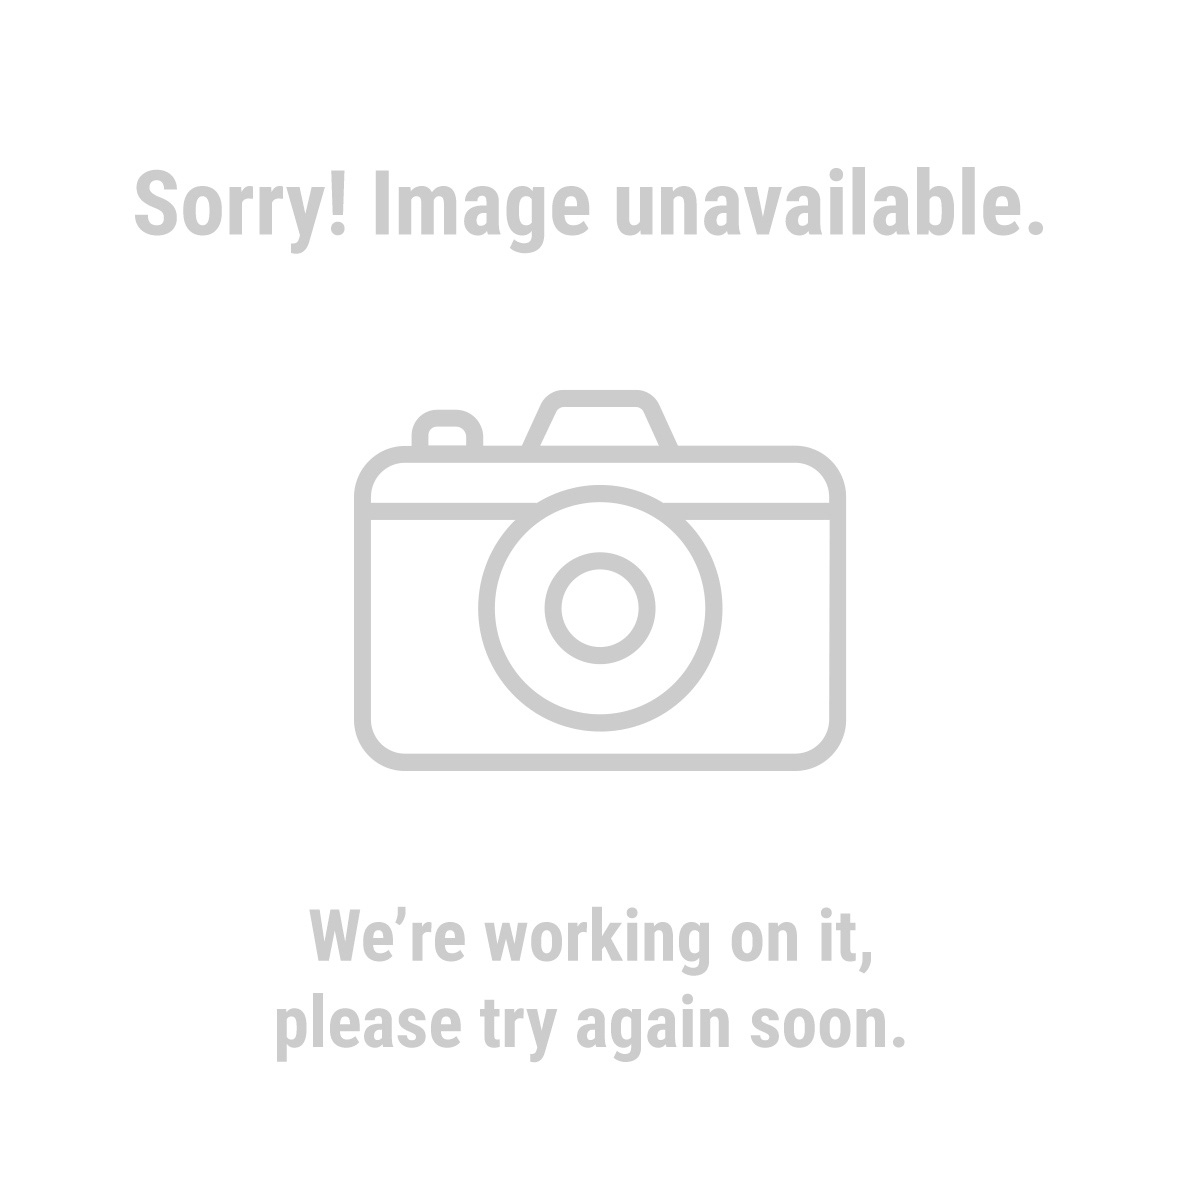 Haul-Master® 99891 25 Ft. Round Stretch Cord with Adjustable Hooks